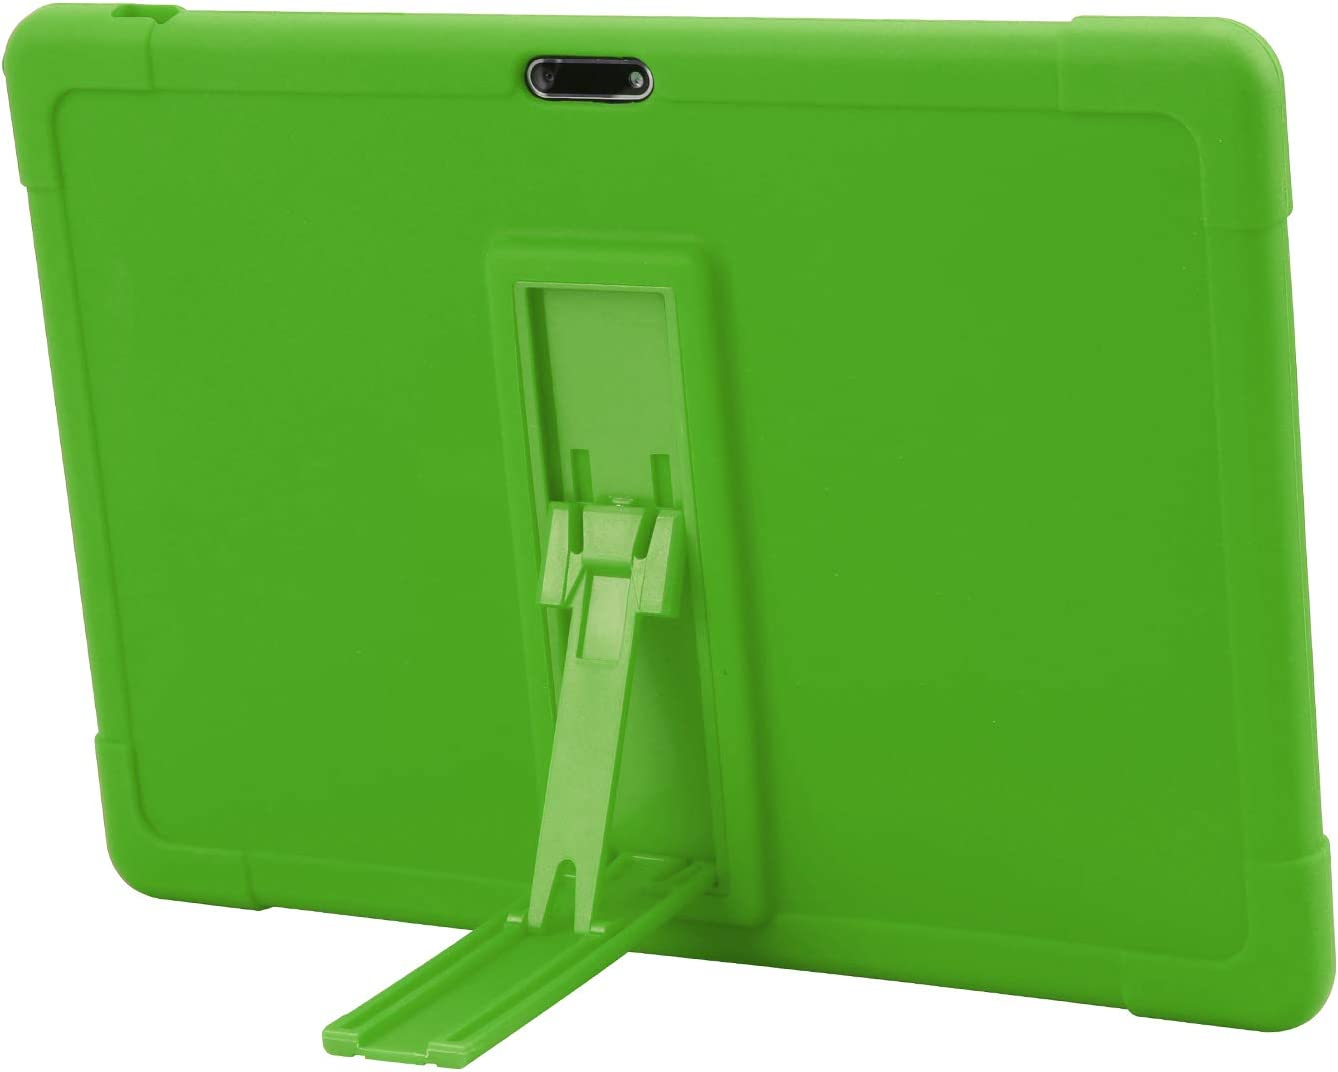 qunyiCO Y10 Case, qunyiCO Tablet 10 inch Case [Kickstand] [Case for Kids] Shockproof Silicone Case Tablet Protective Bracket Stand Cover Case for Vucatimes N10 Tablet (Green)